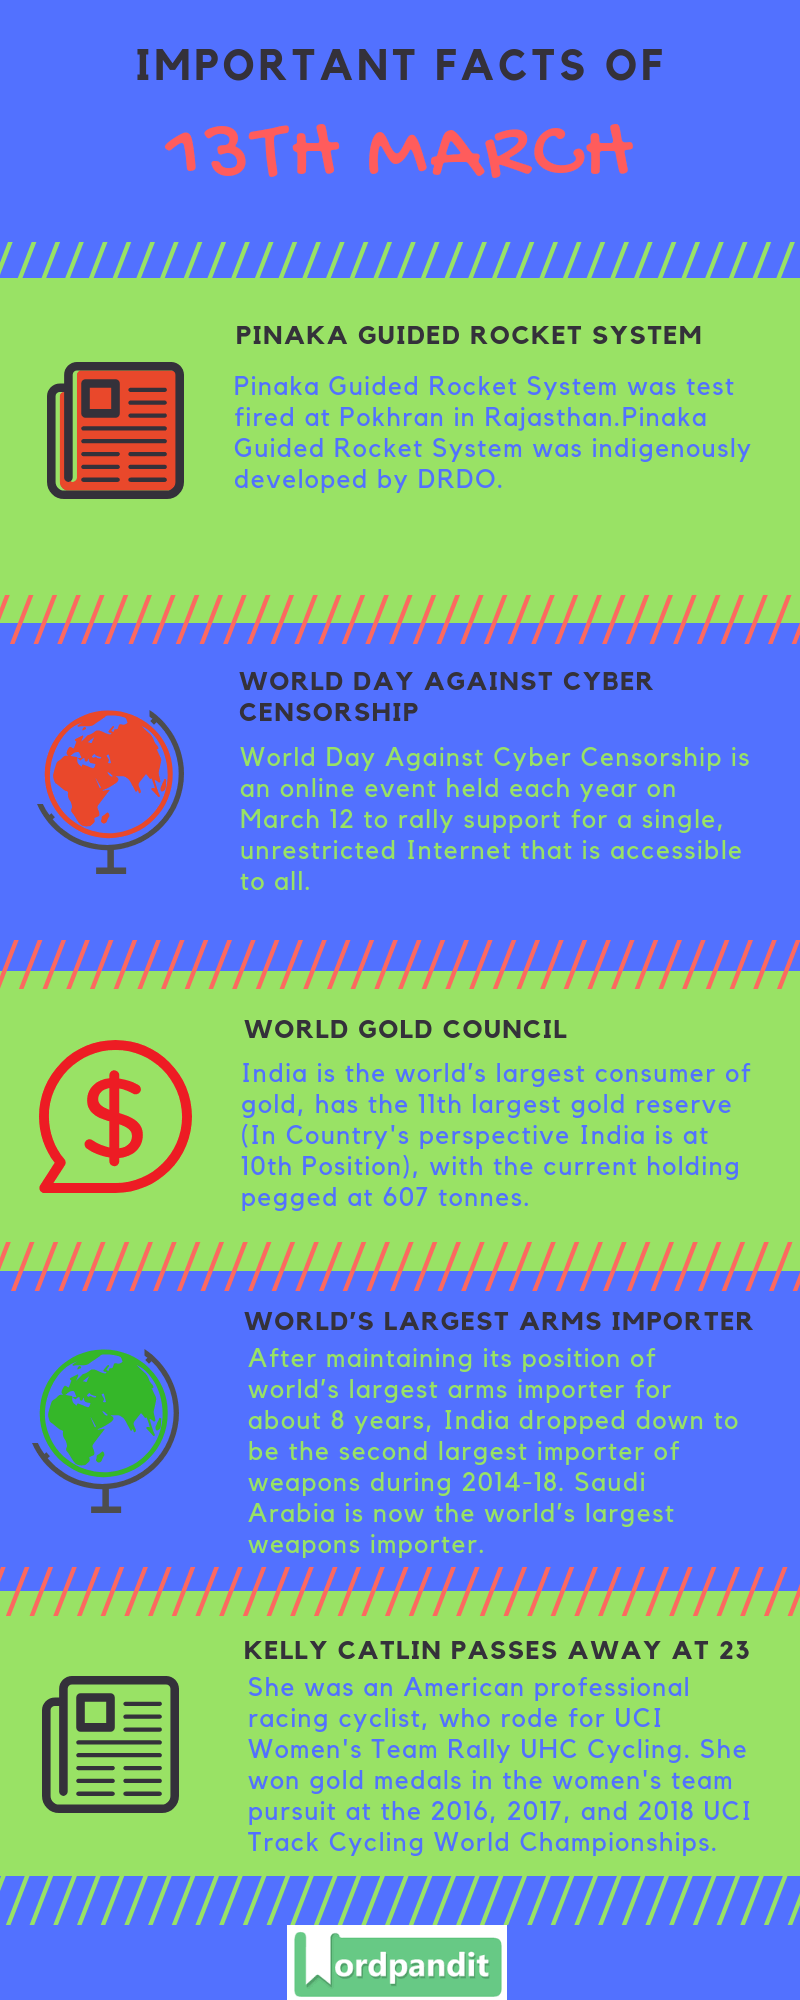 Daily Current Affairs 13 March 2019 Current Affairs Quiz 13 March 2019 Current Affairs Infographic